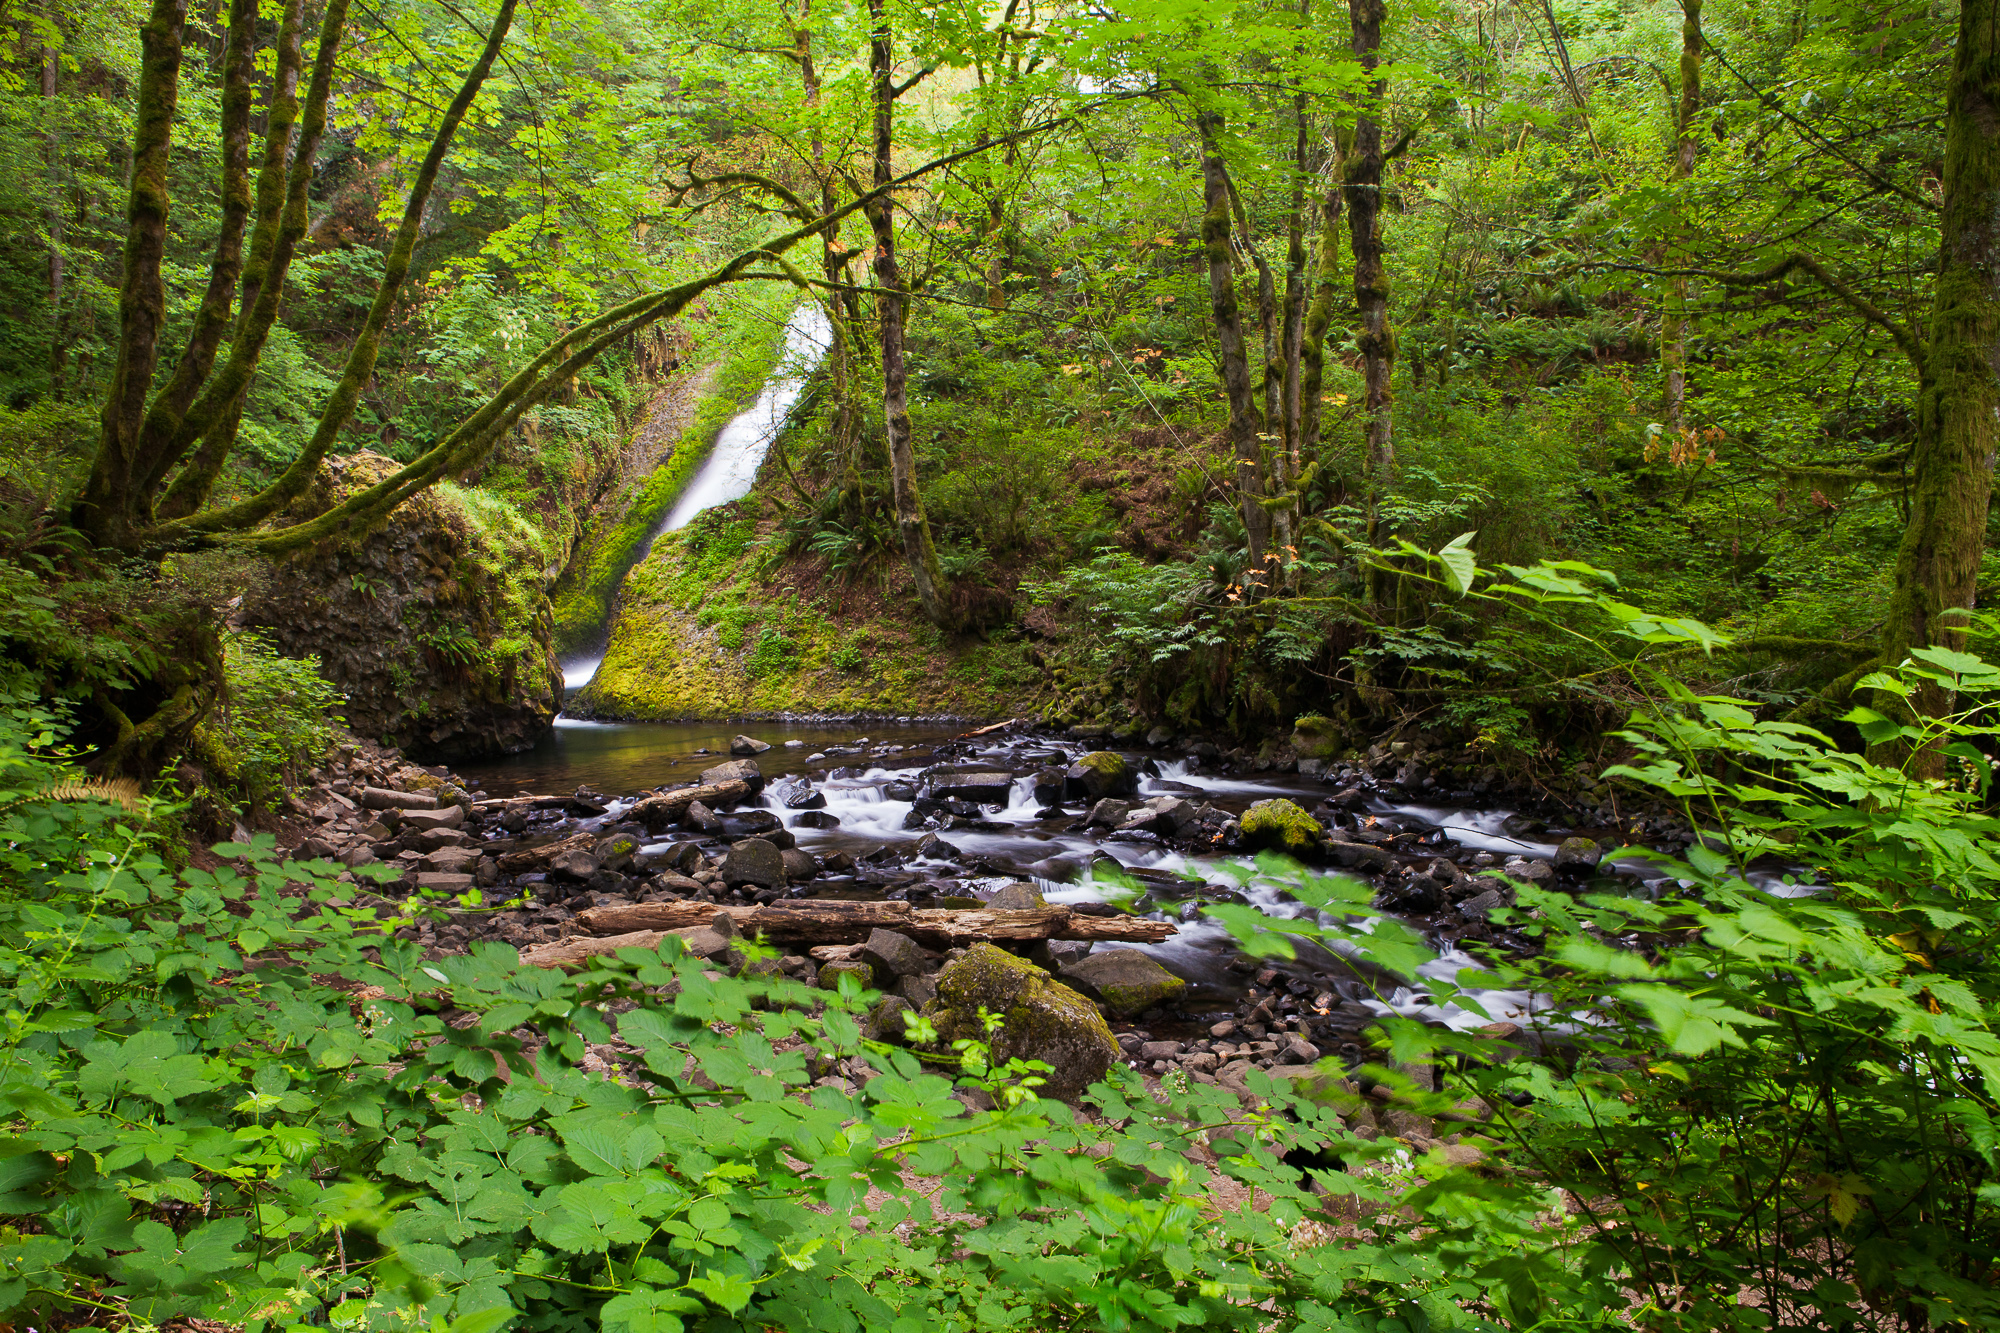 Bridal Veil Falls opens up into a creek that flows through dense forest, Columbia River Gorge, Oregon